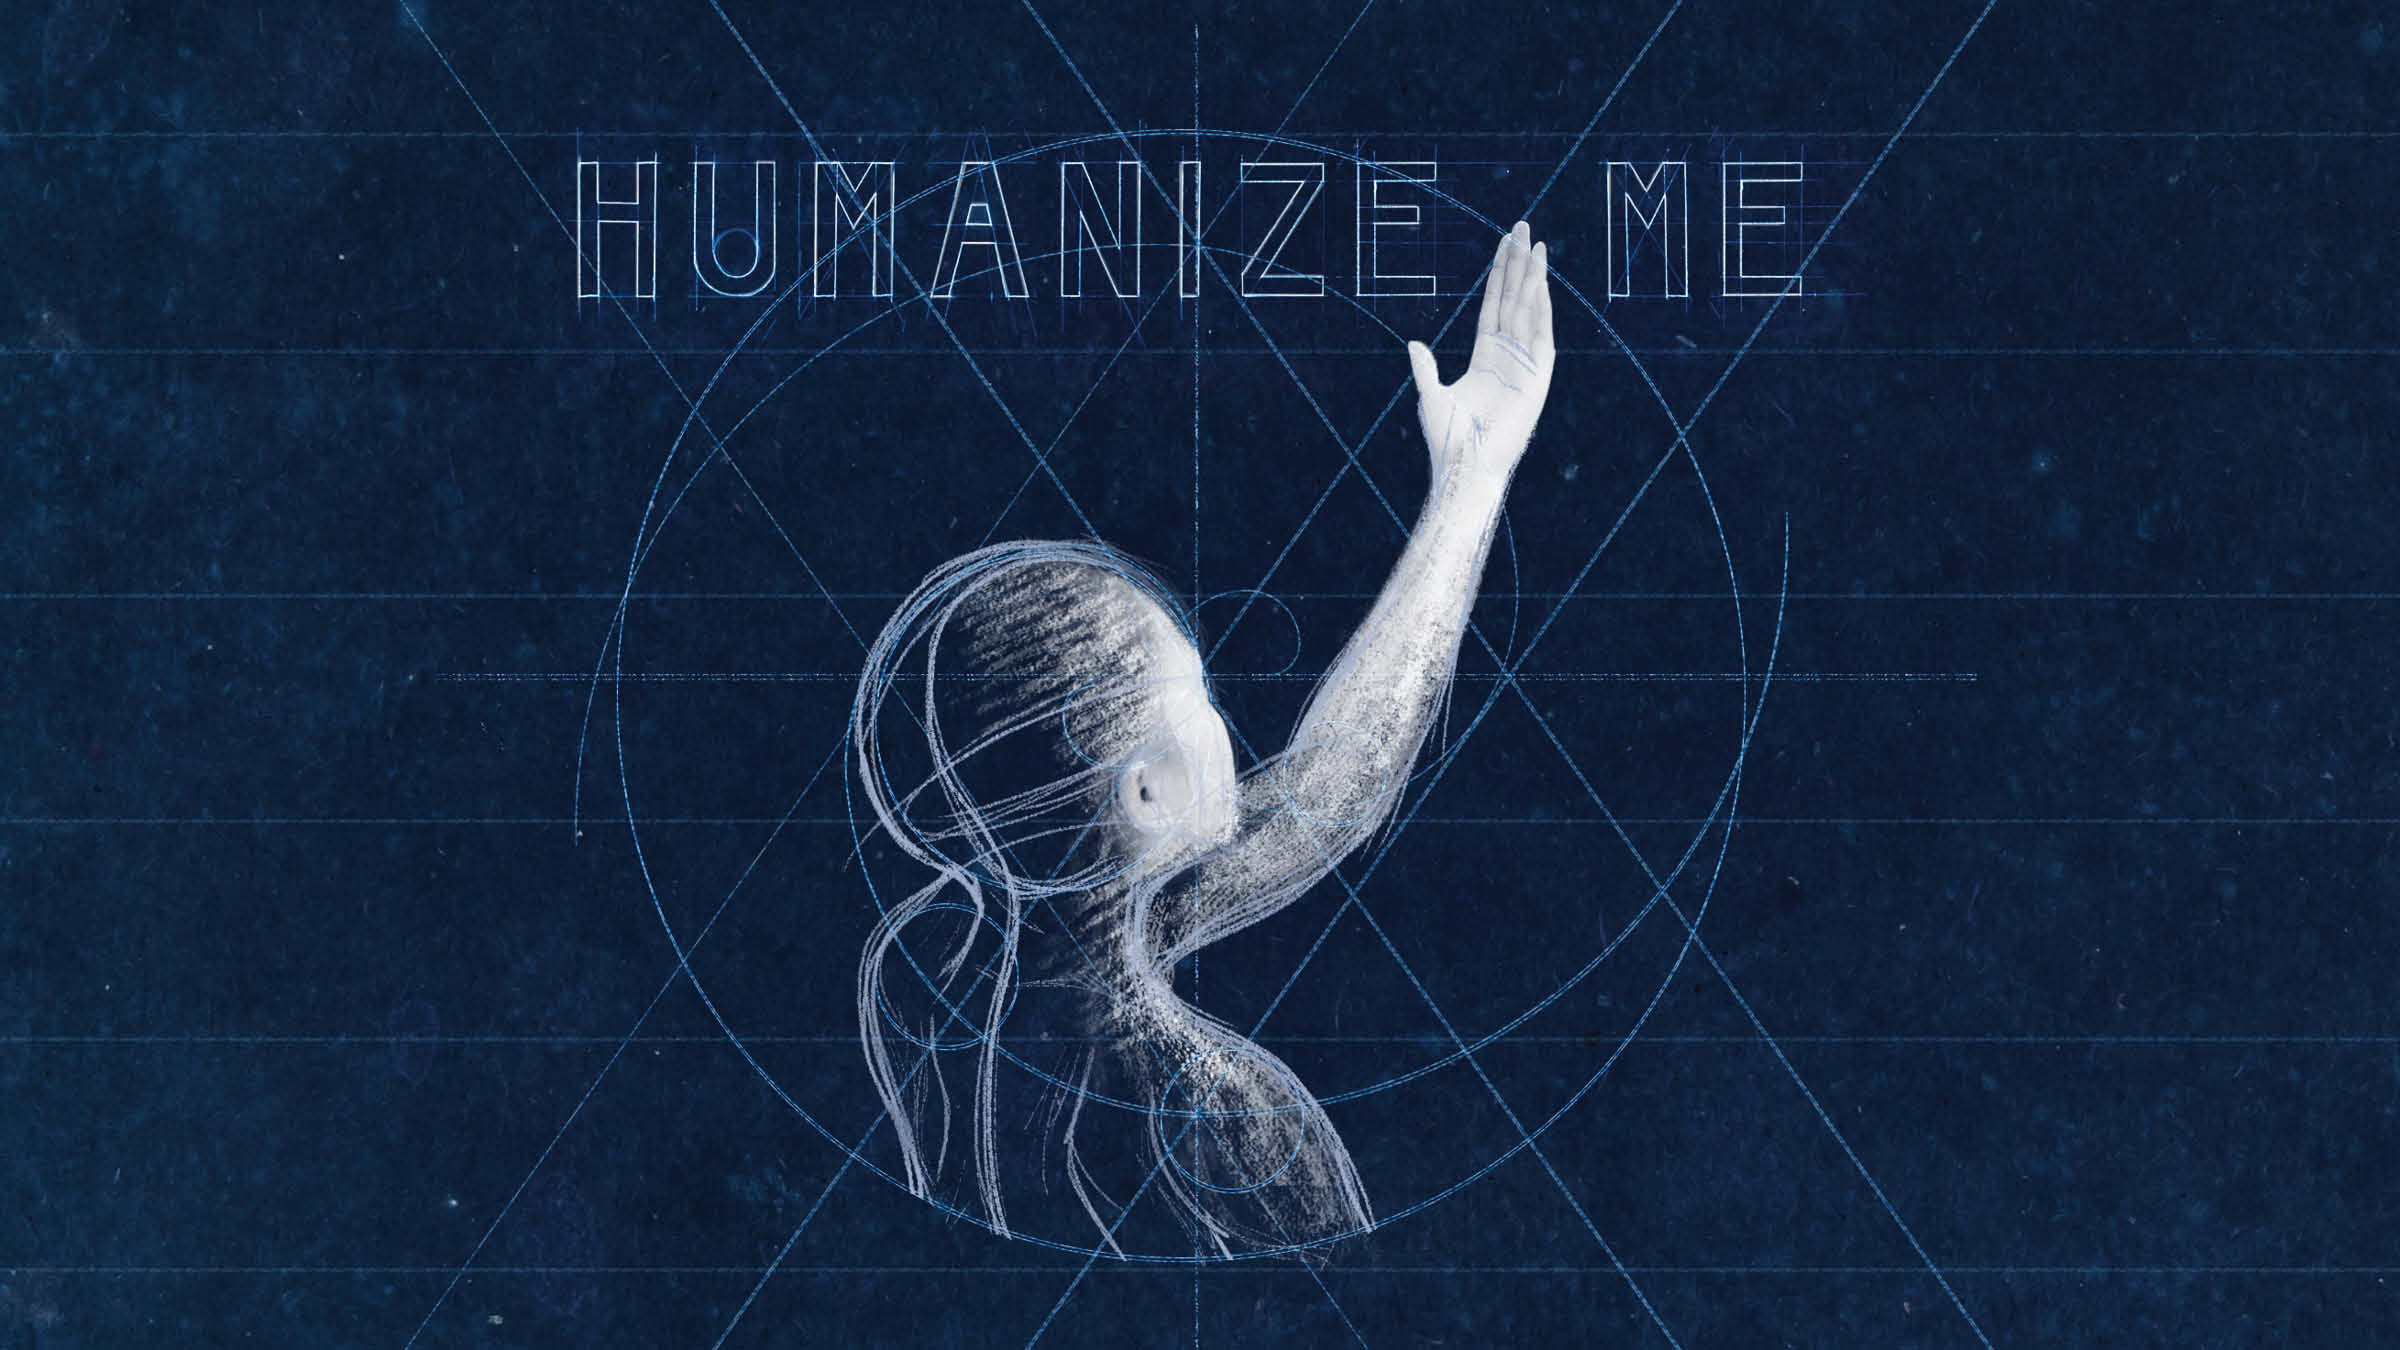 Humanize Me | A City Lifted | Tim McConnell